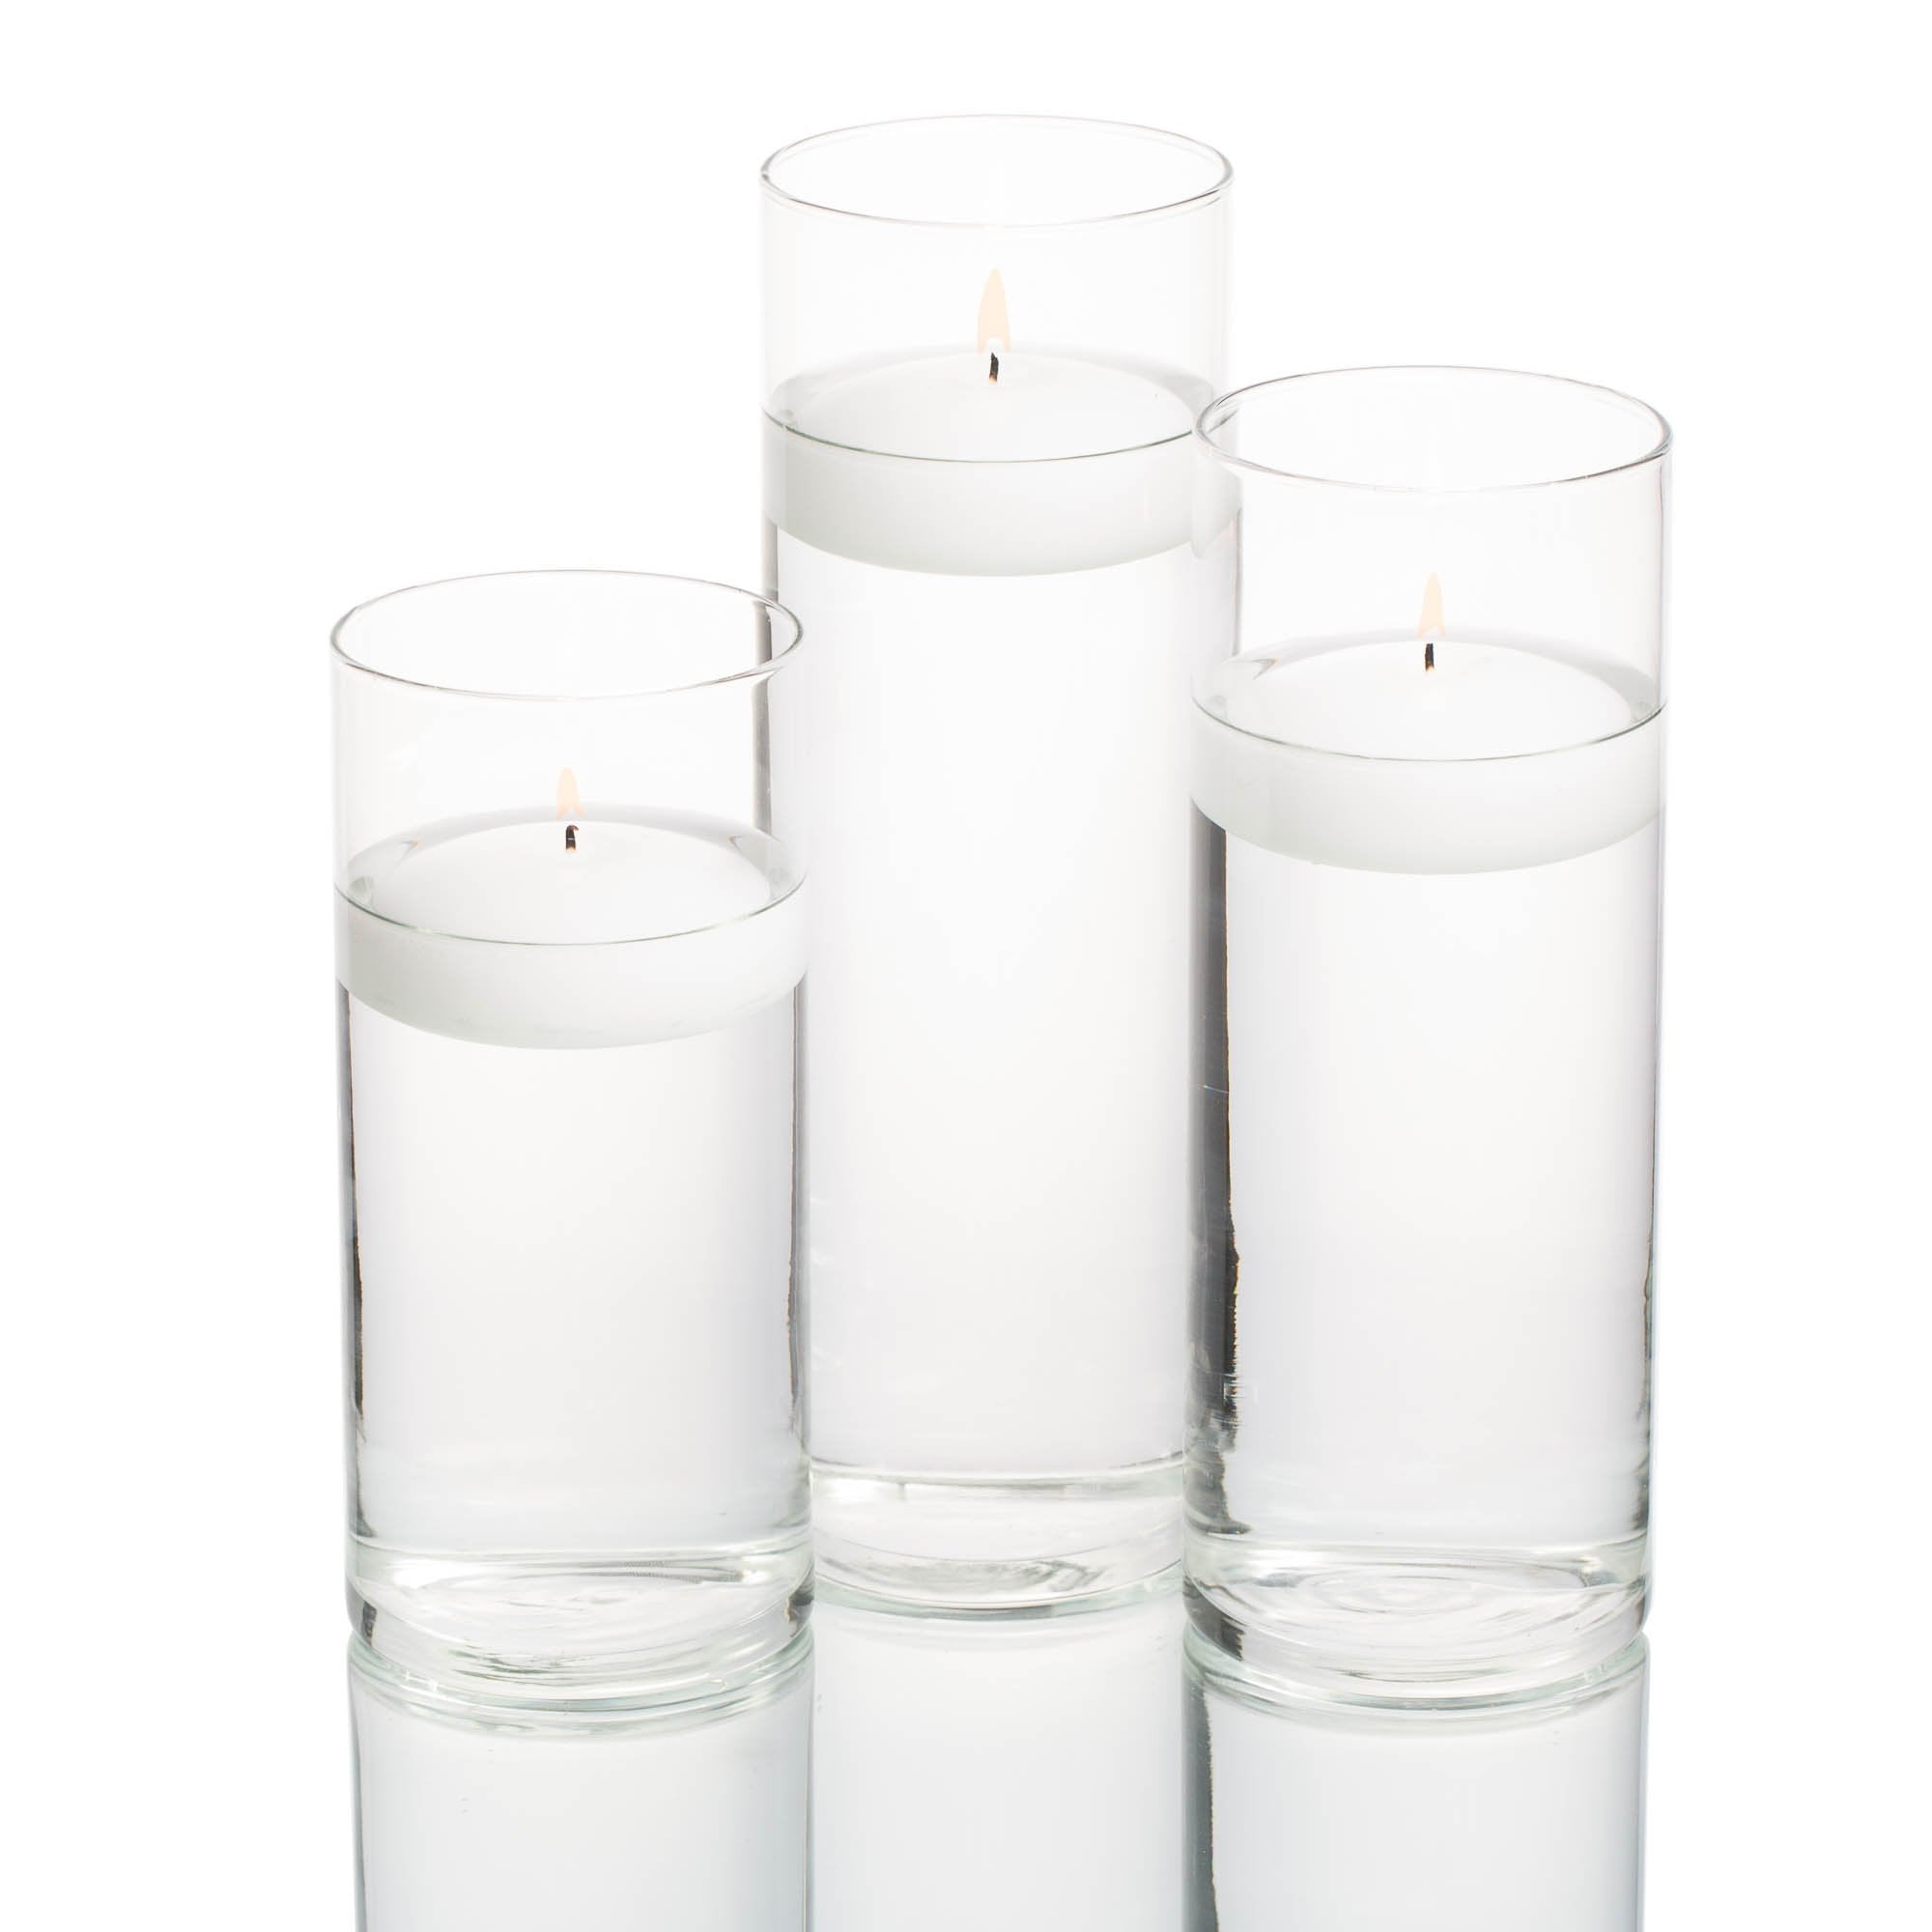 Floating Candle & Holder Sets